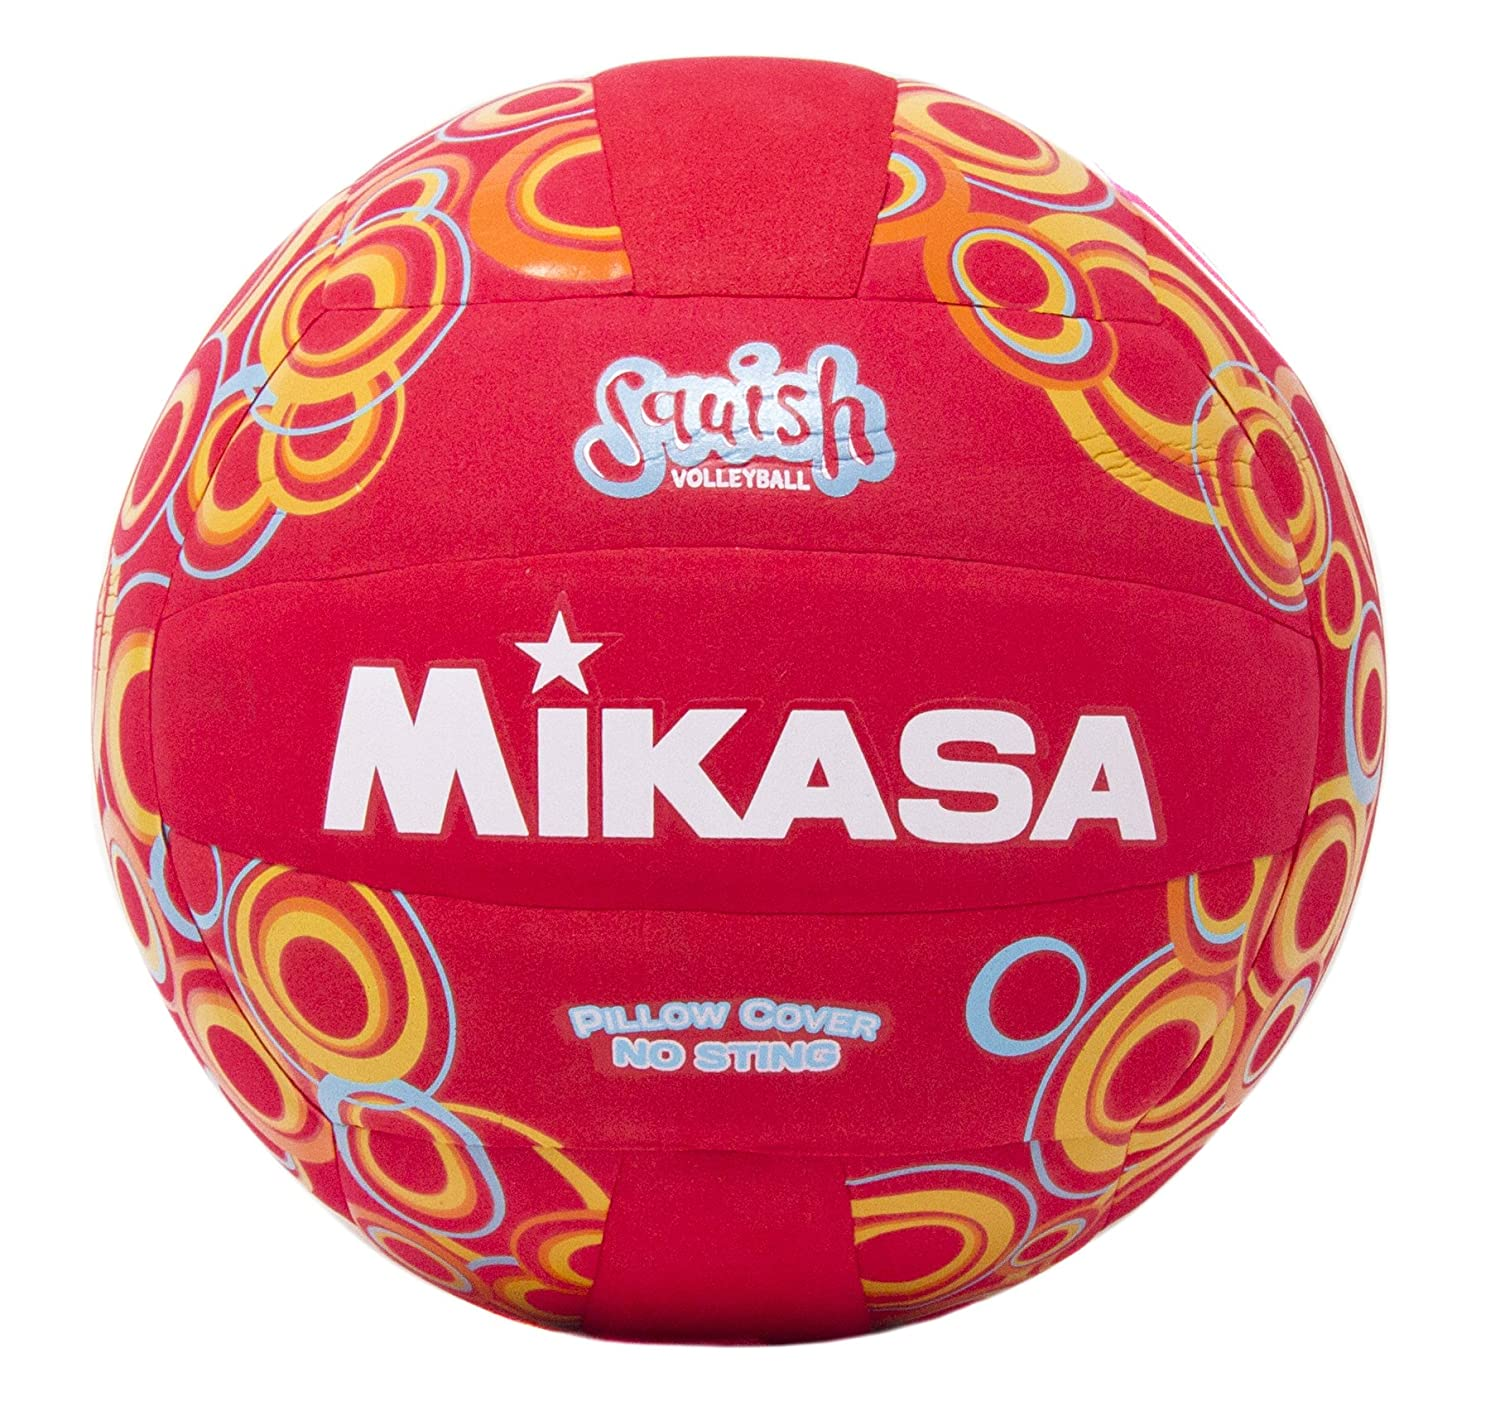 Mikasa All Purpose Volleyball Water Proof non Sting Cover Ball Choose Your Color VSV104